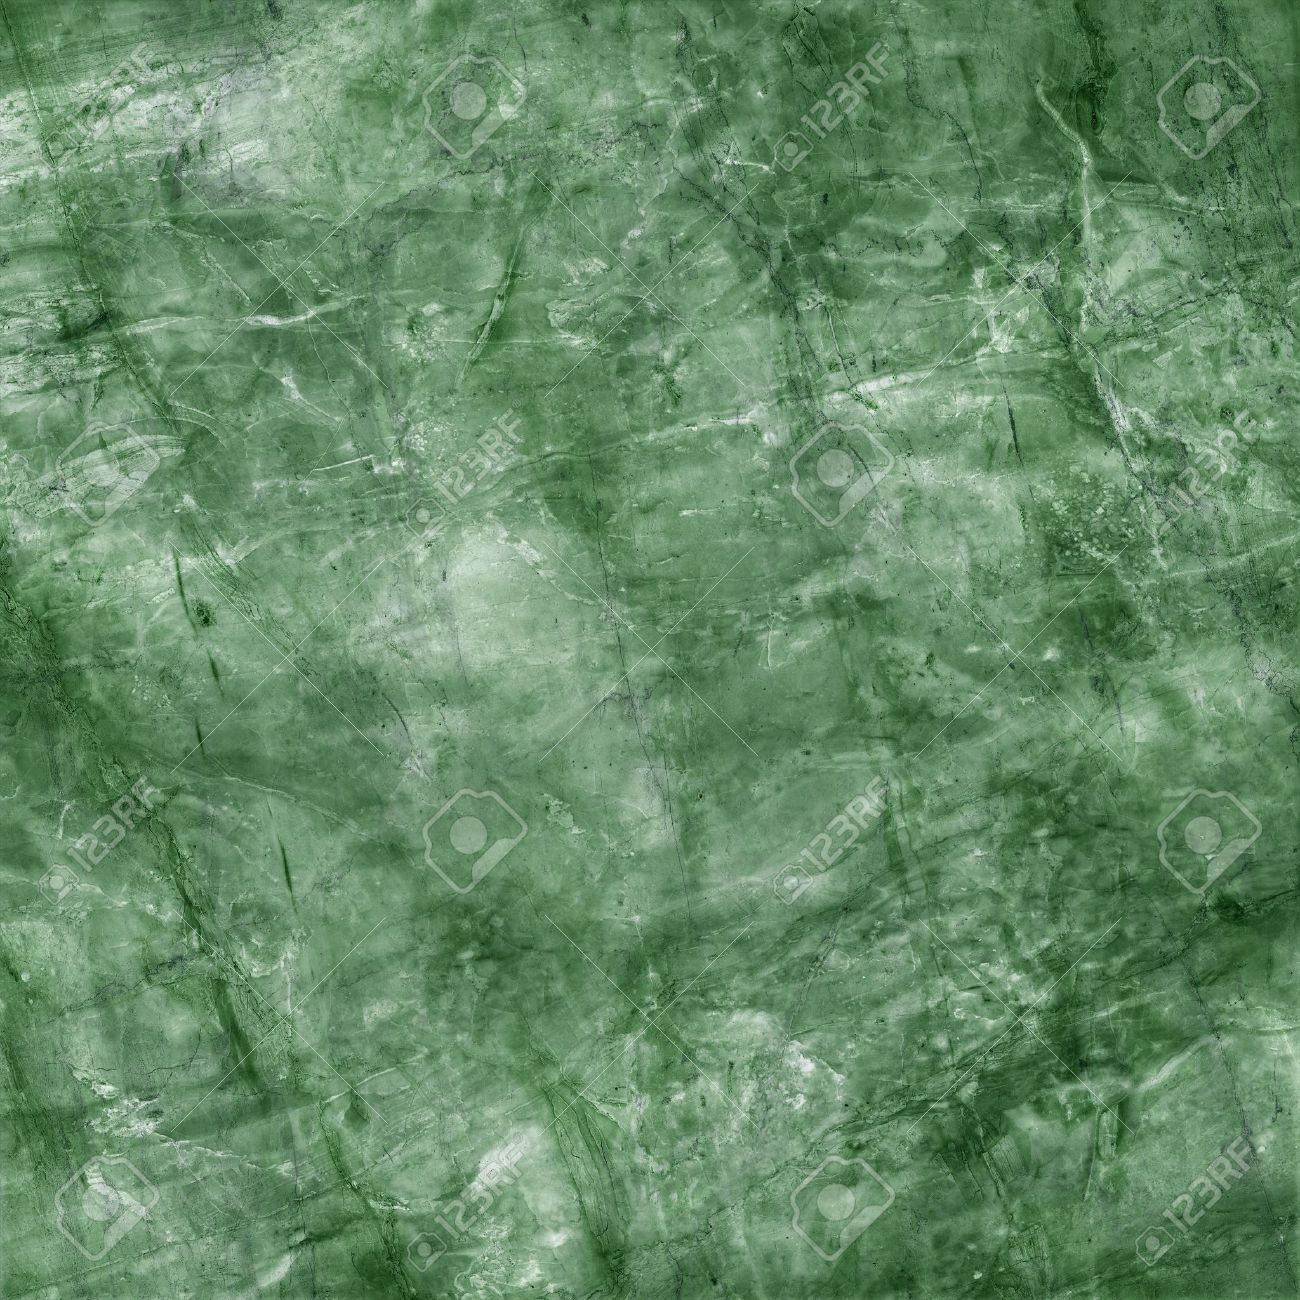 High Resolution Green Marble Background Marble Texture Stock Photo Picture And Royalty Free Image Image 9187250